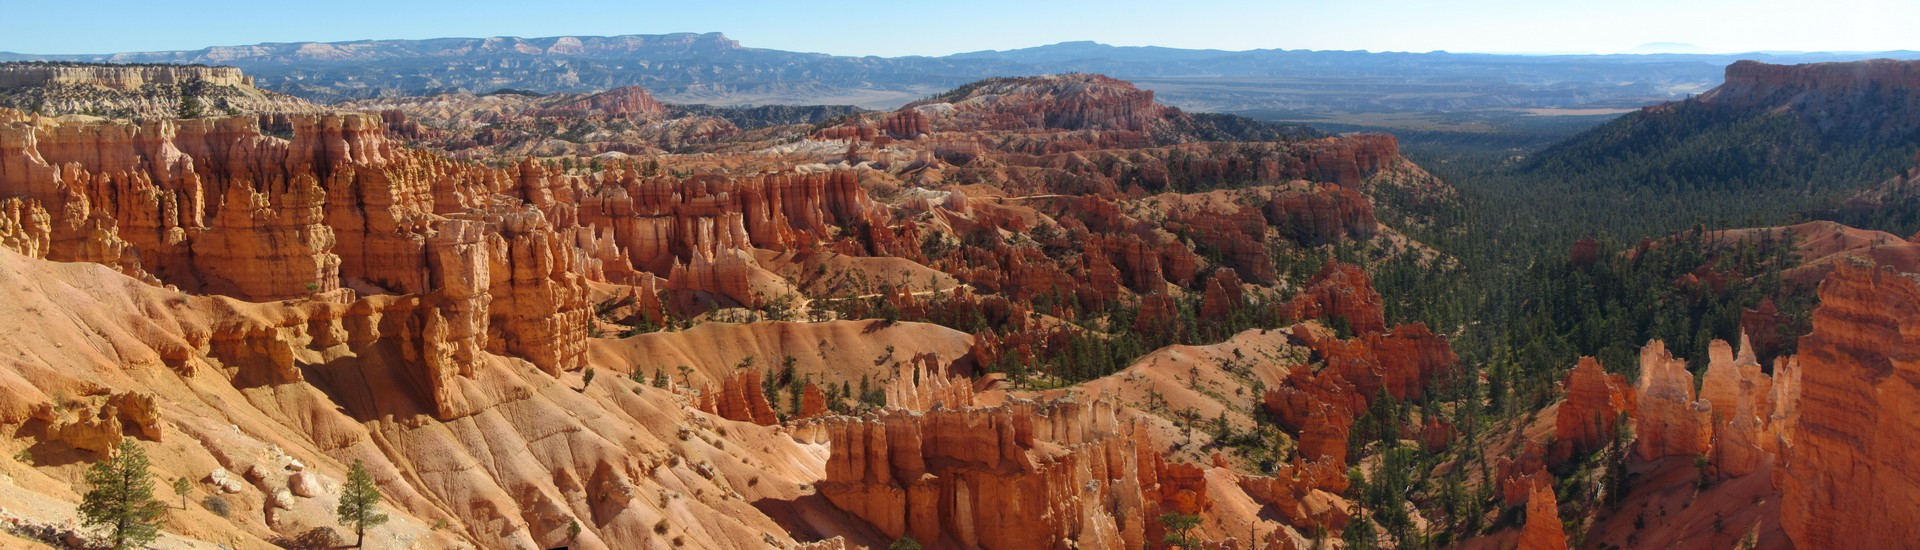 2017-10-07 Bryce Canyon-309_stitch